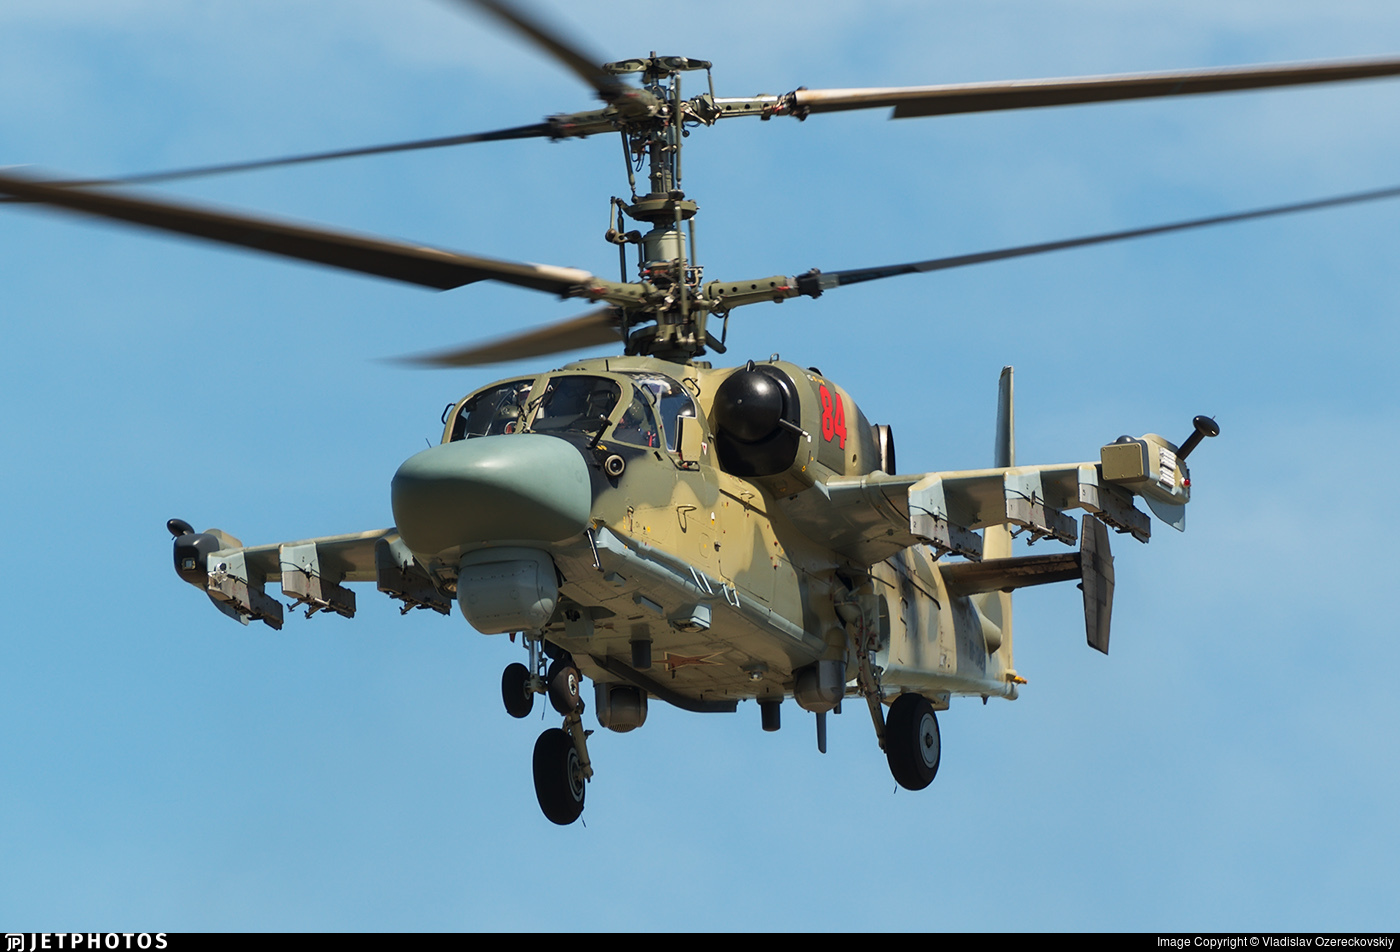 RF-13423 - Kamov Ka-52 Alligator - Russia - Air Force